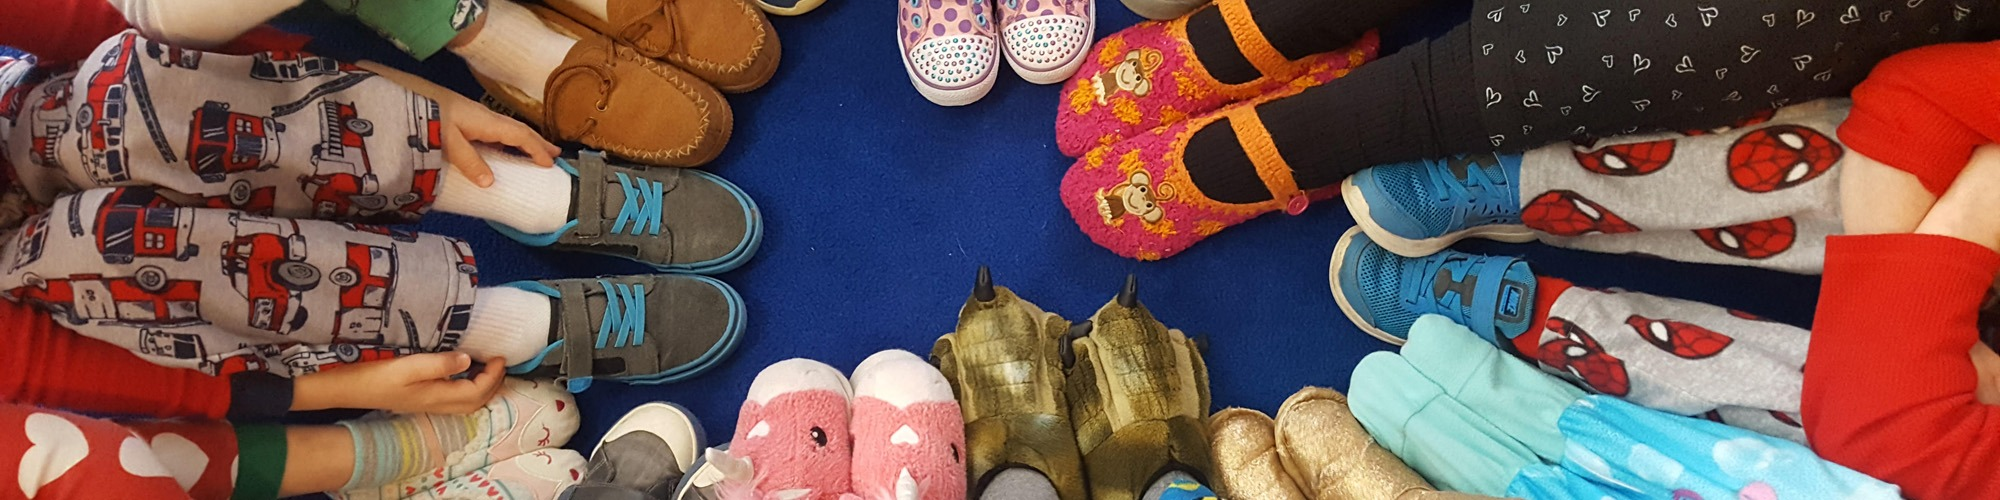 burke presbyerian church preschool shoes